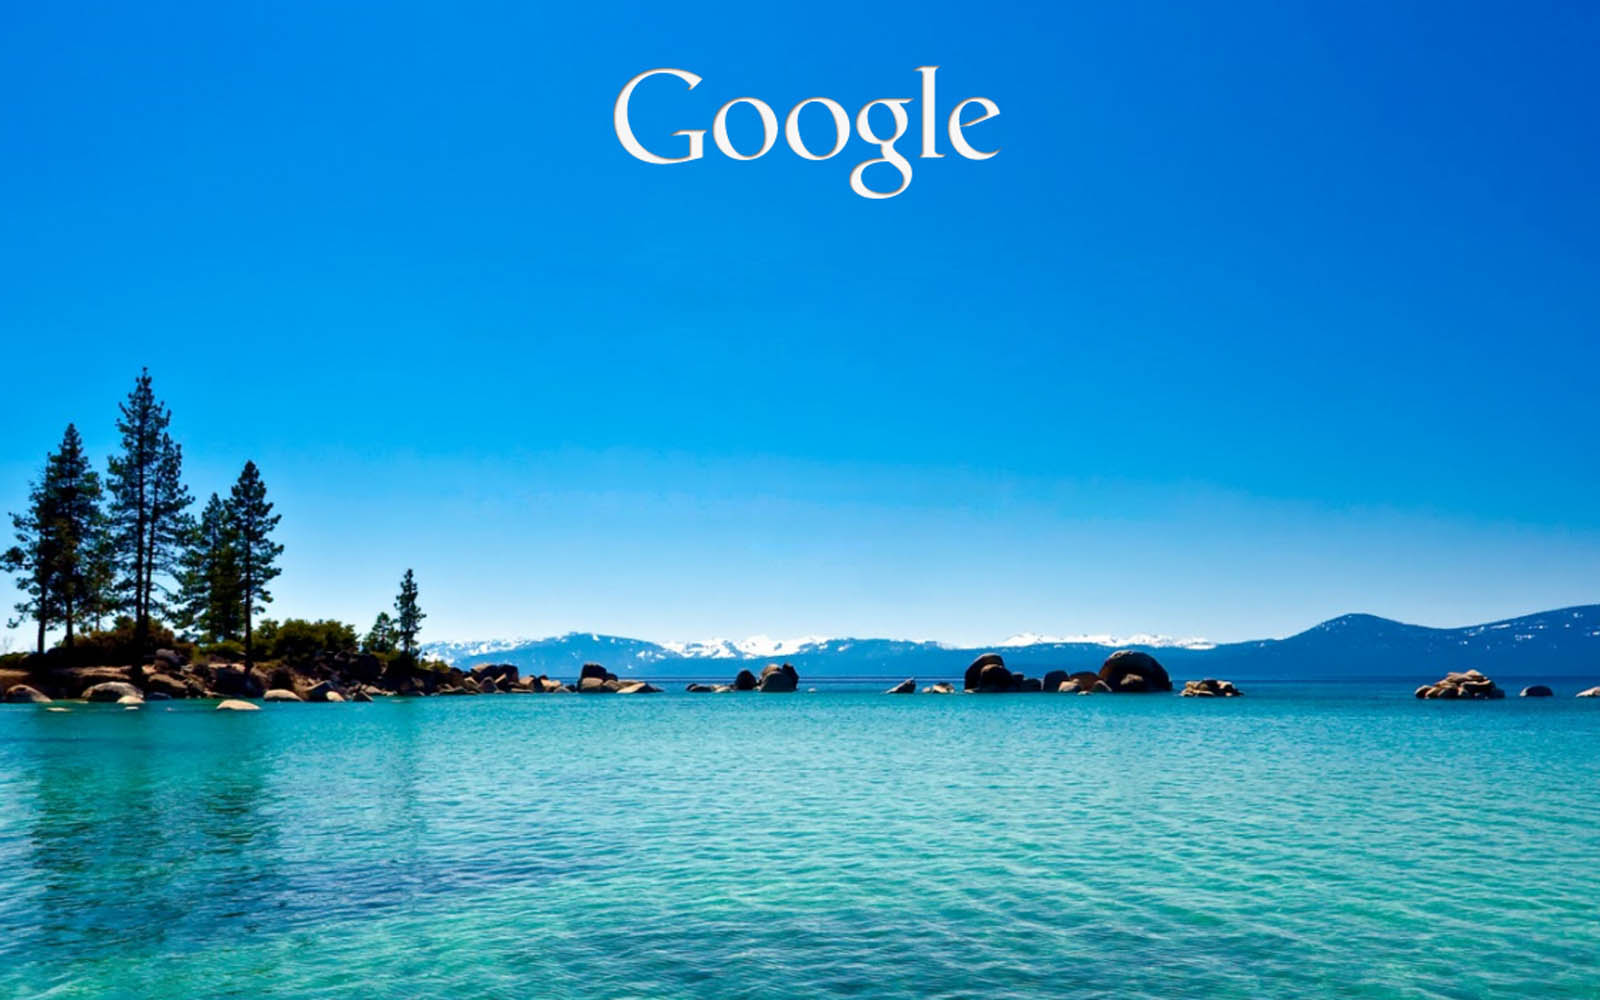 Google Backgrounds Wallpapers Photos Pictures and Images for 1600x1000